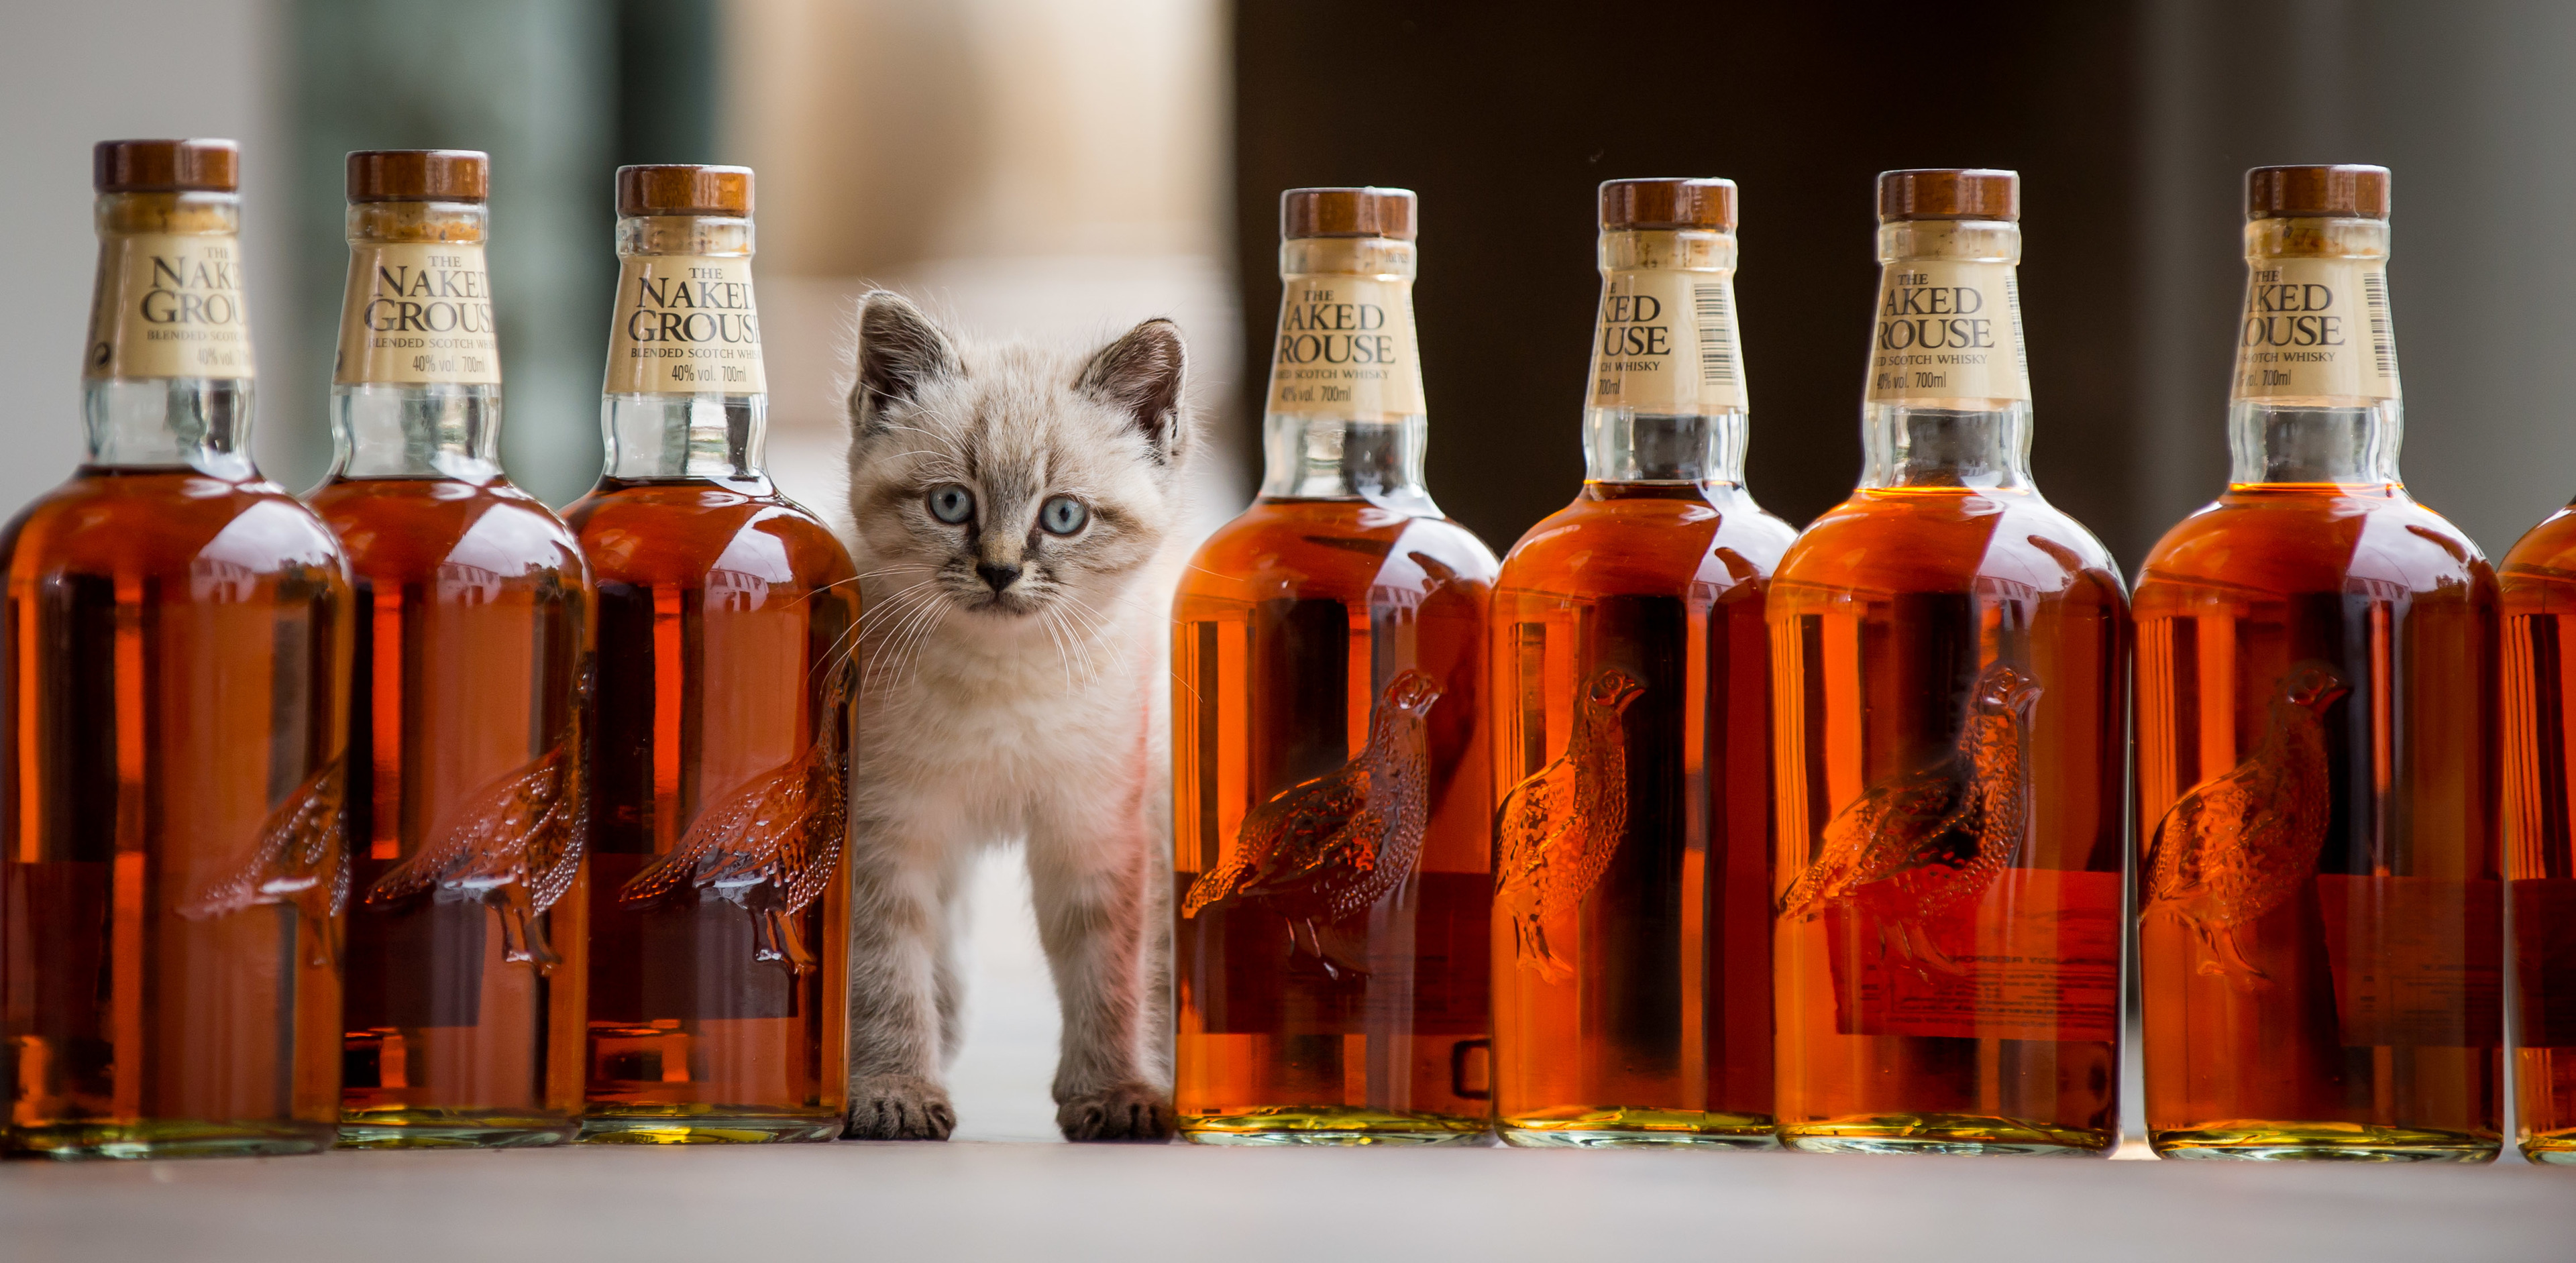 Peat was the official mouser at The Famous Grouse Experience, at Glenturret Distillery.